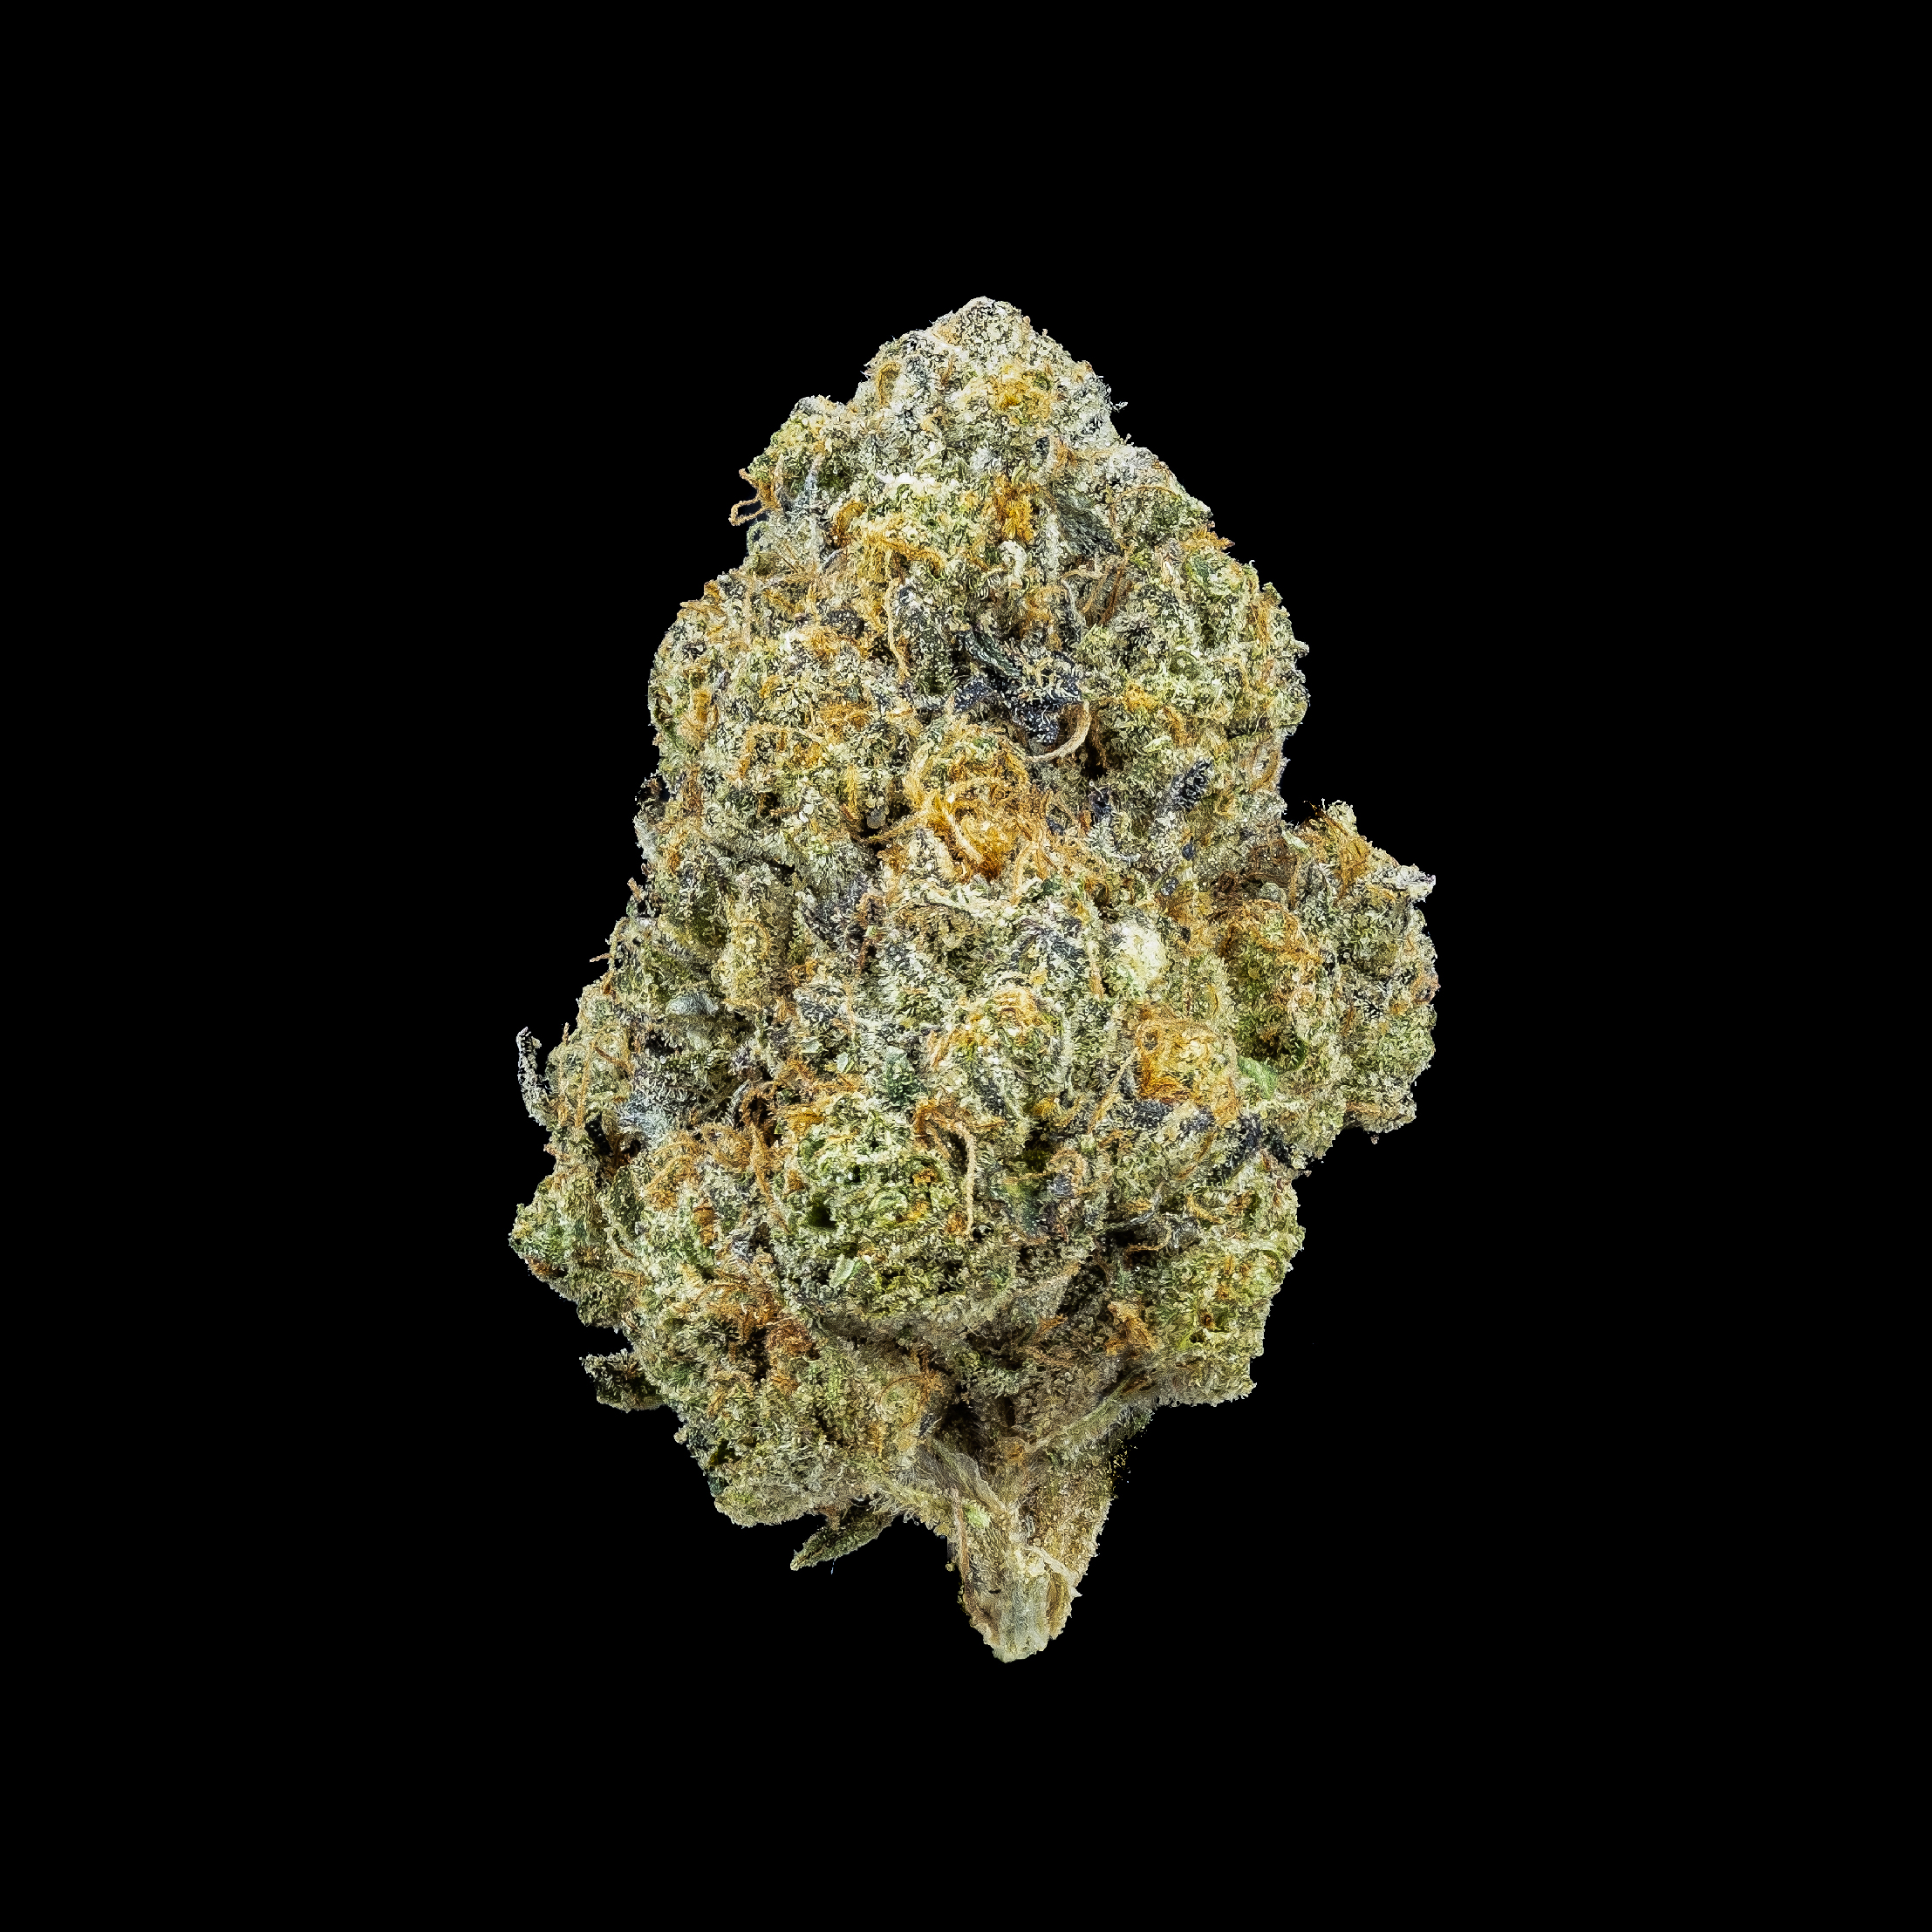 JETLATO - With super gassy kick of Jetfuel OG, softened with the sweet aftertaste of Gelato. Jetlato is a perfect afternoon smoke. This indica dominant hybrid is a great way to end you day but with enough fuel to start up your evening.